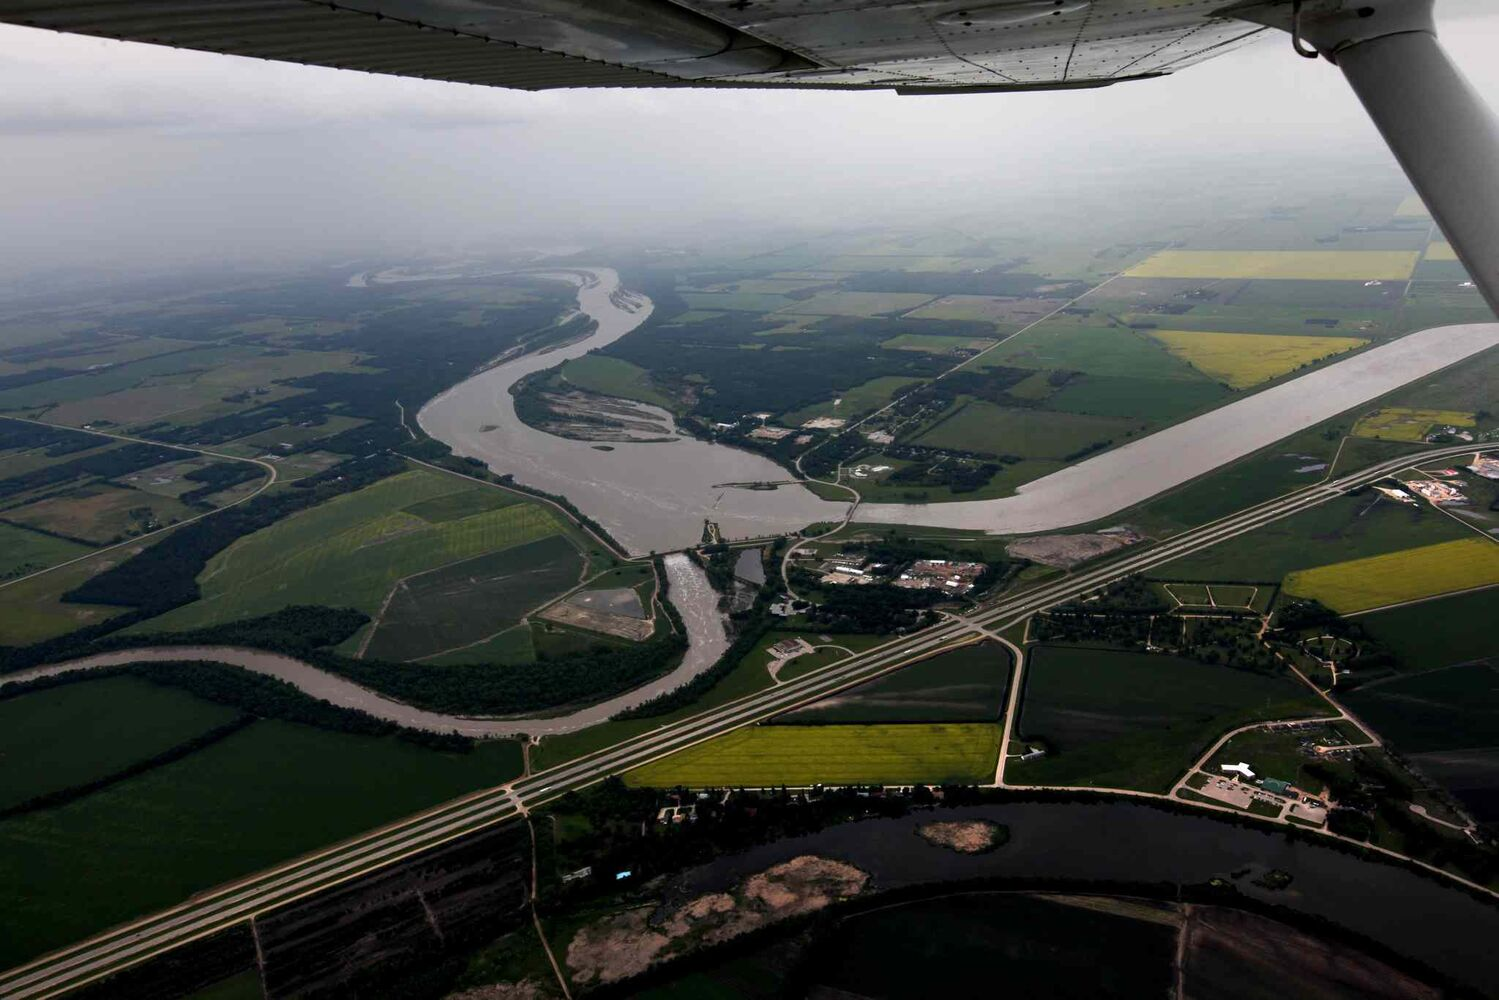 Aerial photo of Portage diversion dam just west of town where water is diverted north to Lake Manitoba.